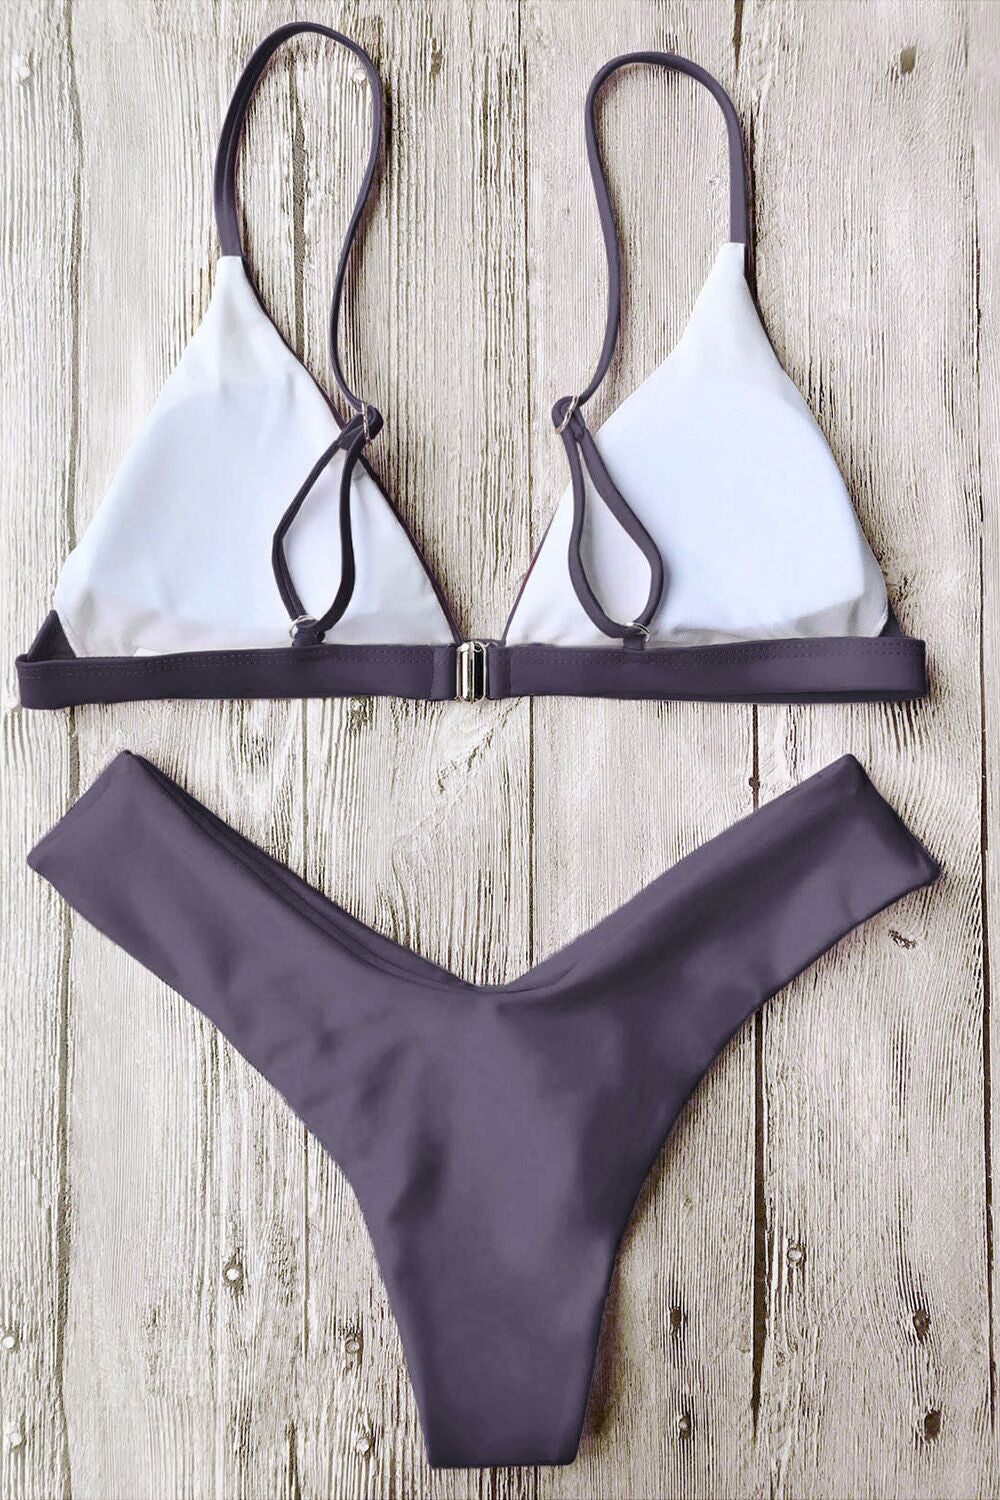 051a064d53 E&C Grey Triangle Spaghetti Straps Thong High Cut Sexy Bikini Set ...